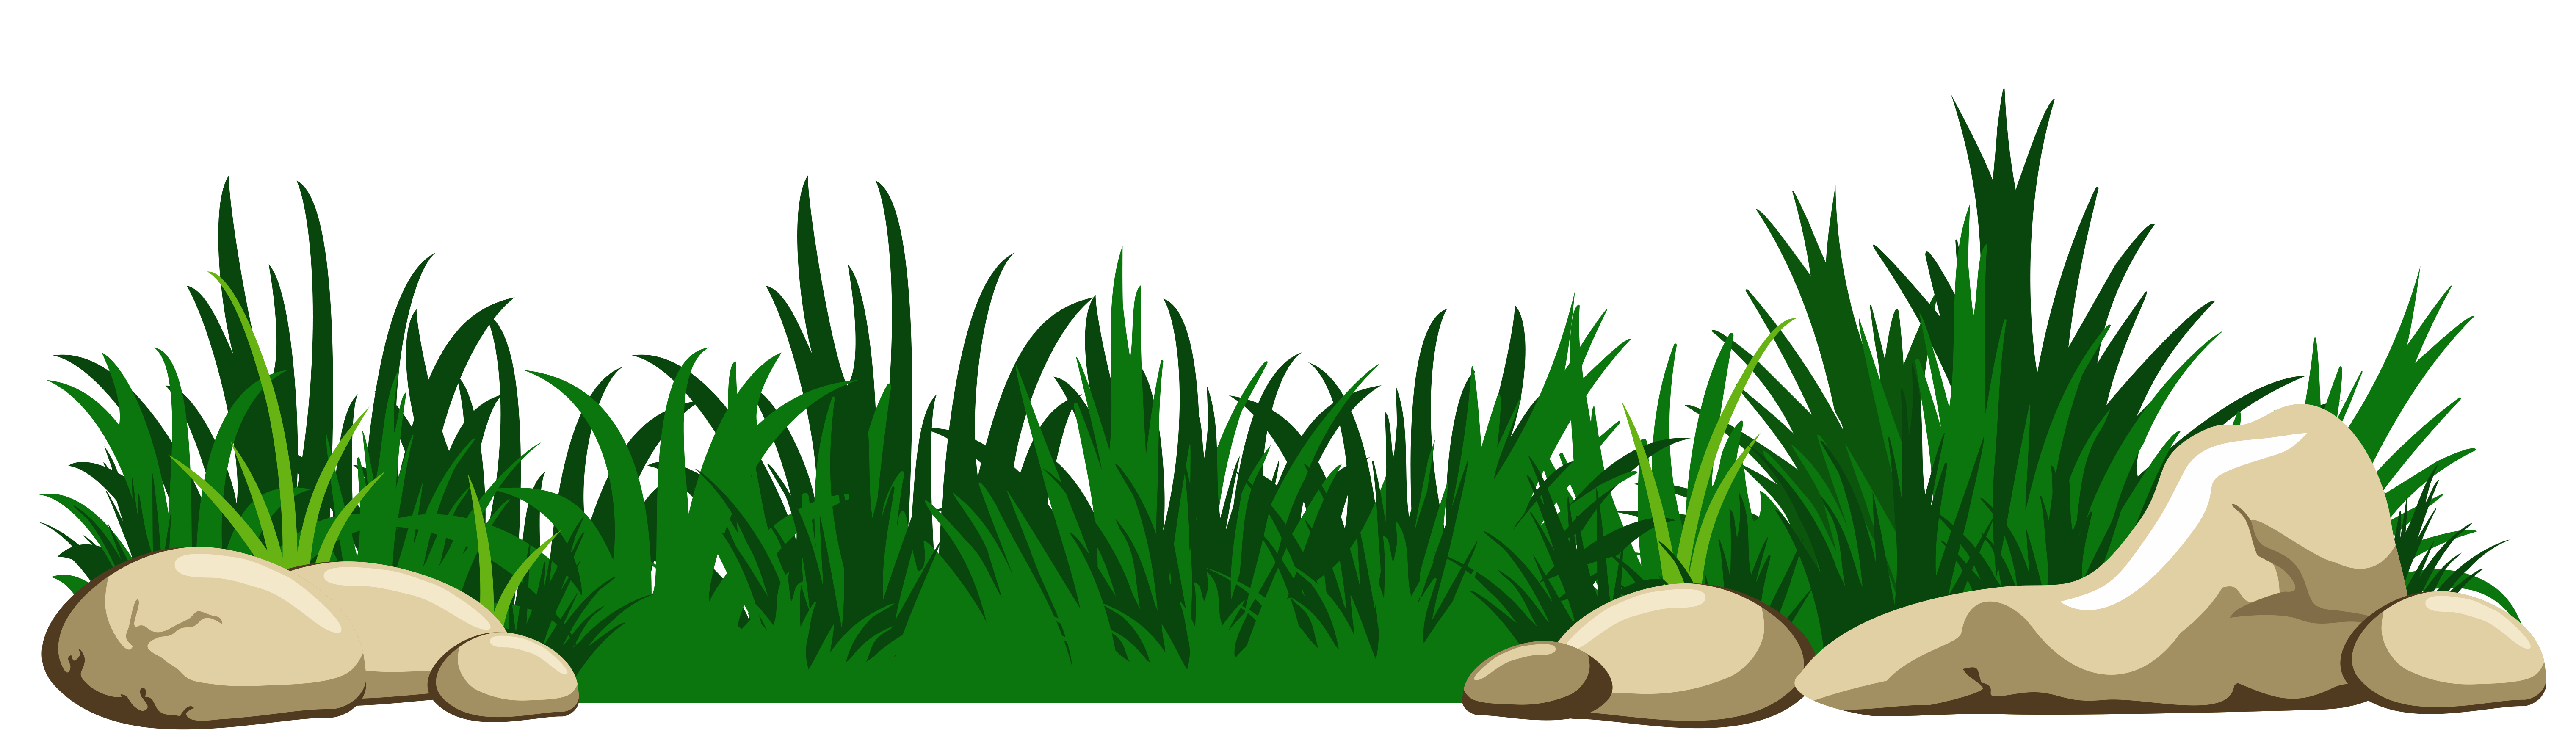 jpg library stock Blade grass free on. Lawn clipart.